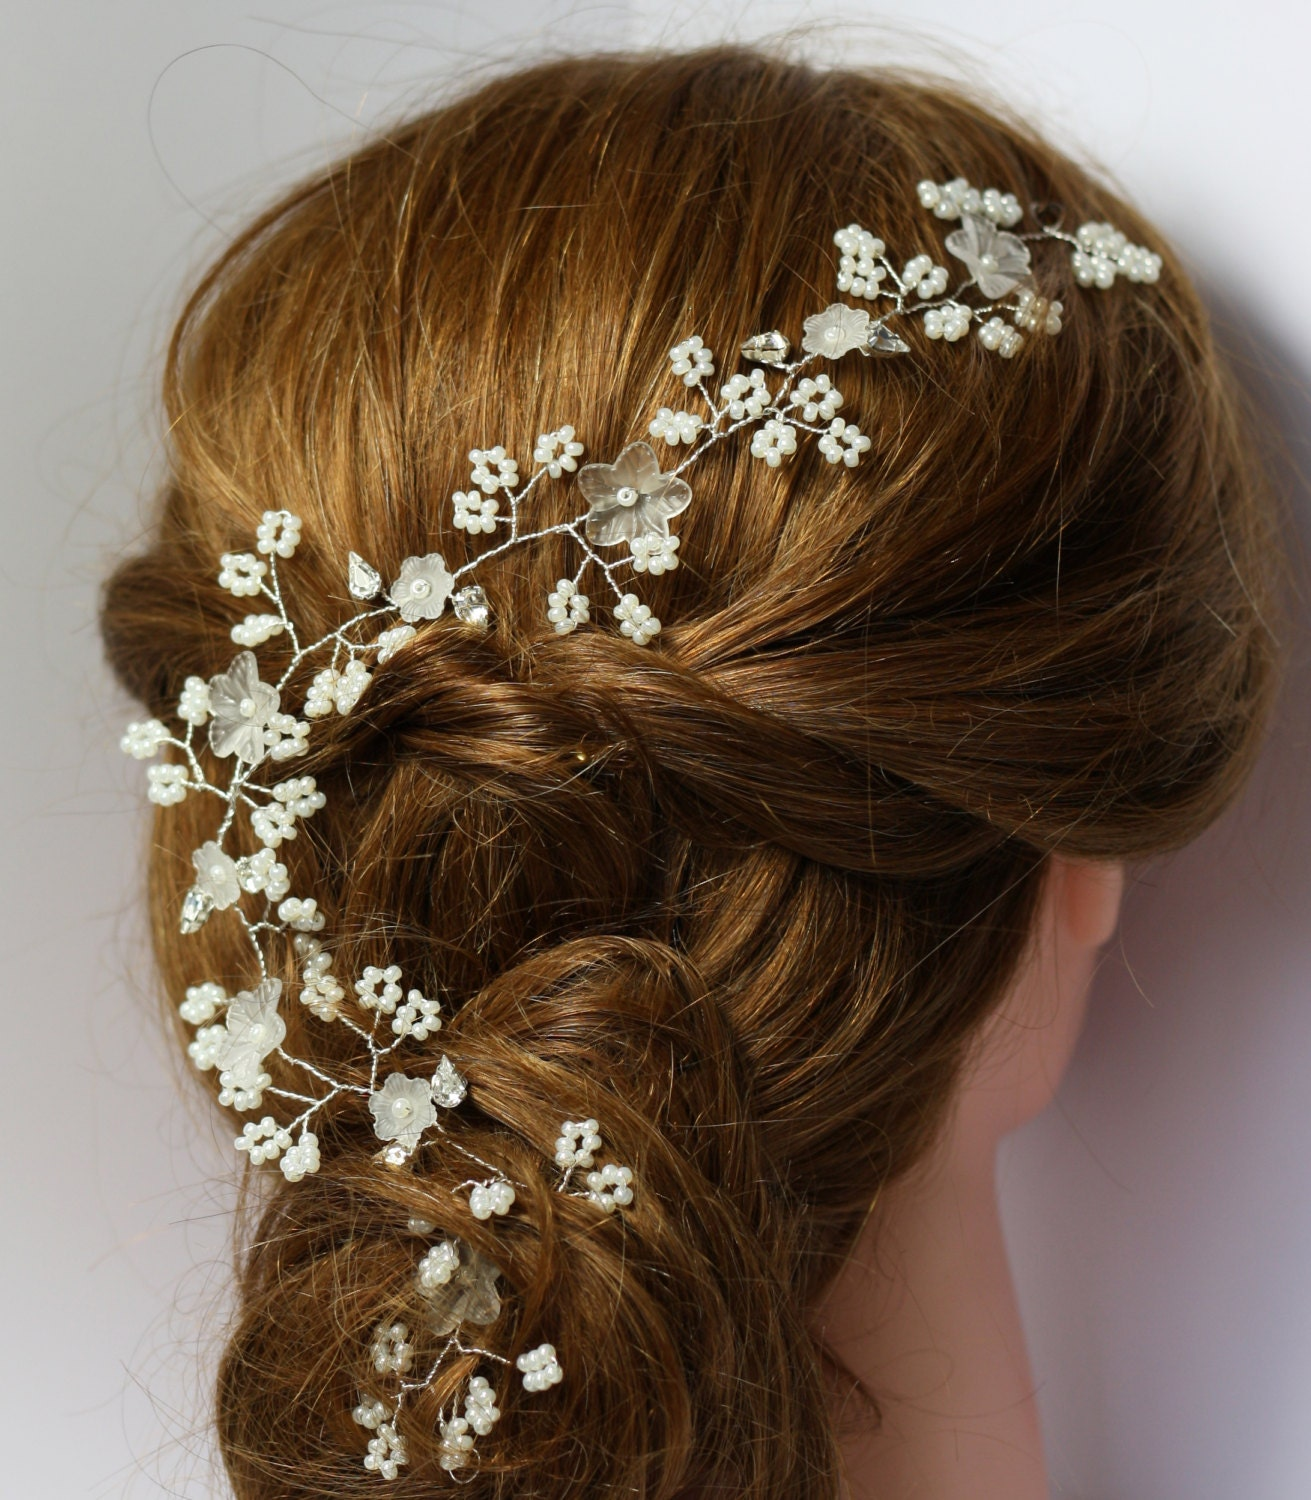 20 Wedding Hairstyles With Flowers: Flower Bridal Hair Vine Bridal Hair Adornment Floral Hair